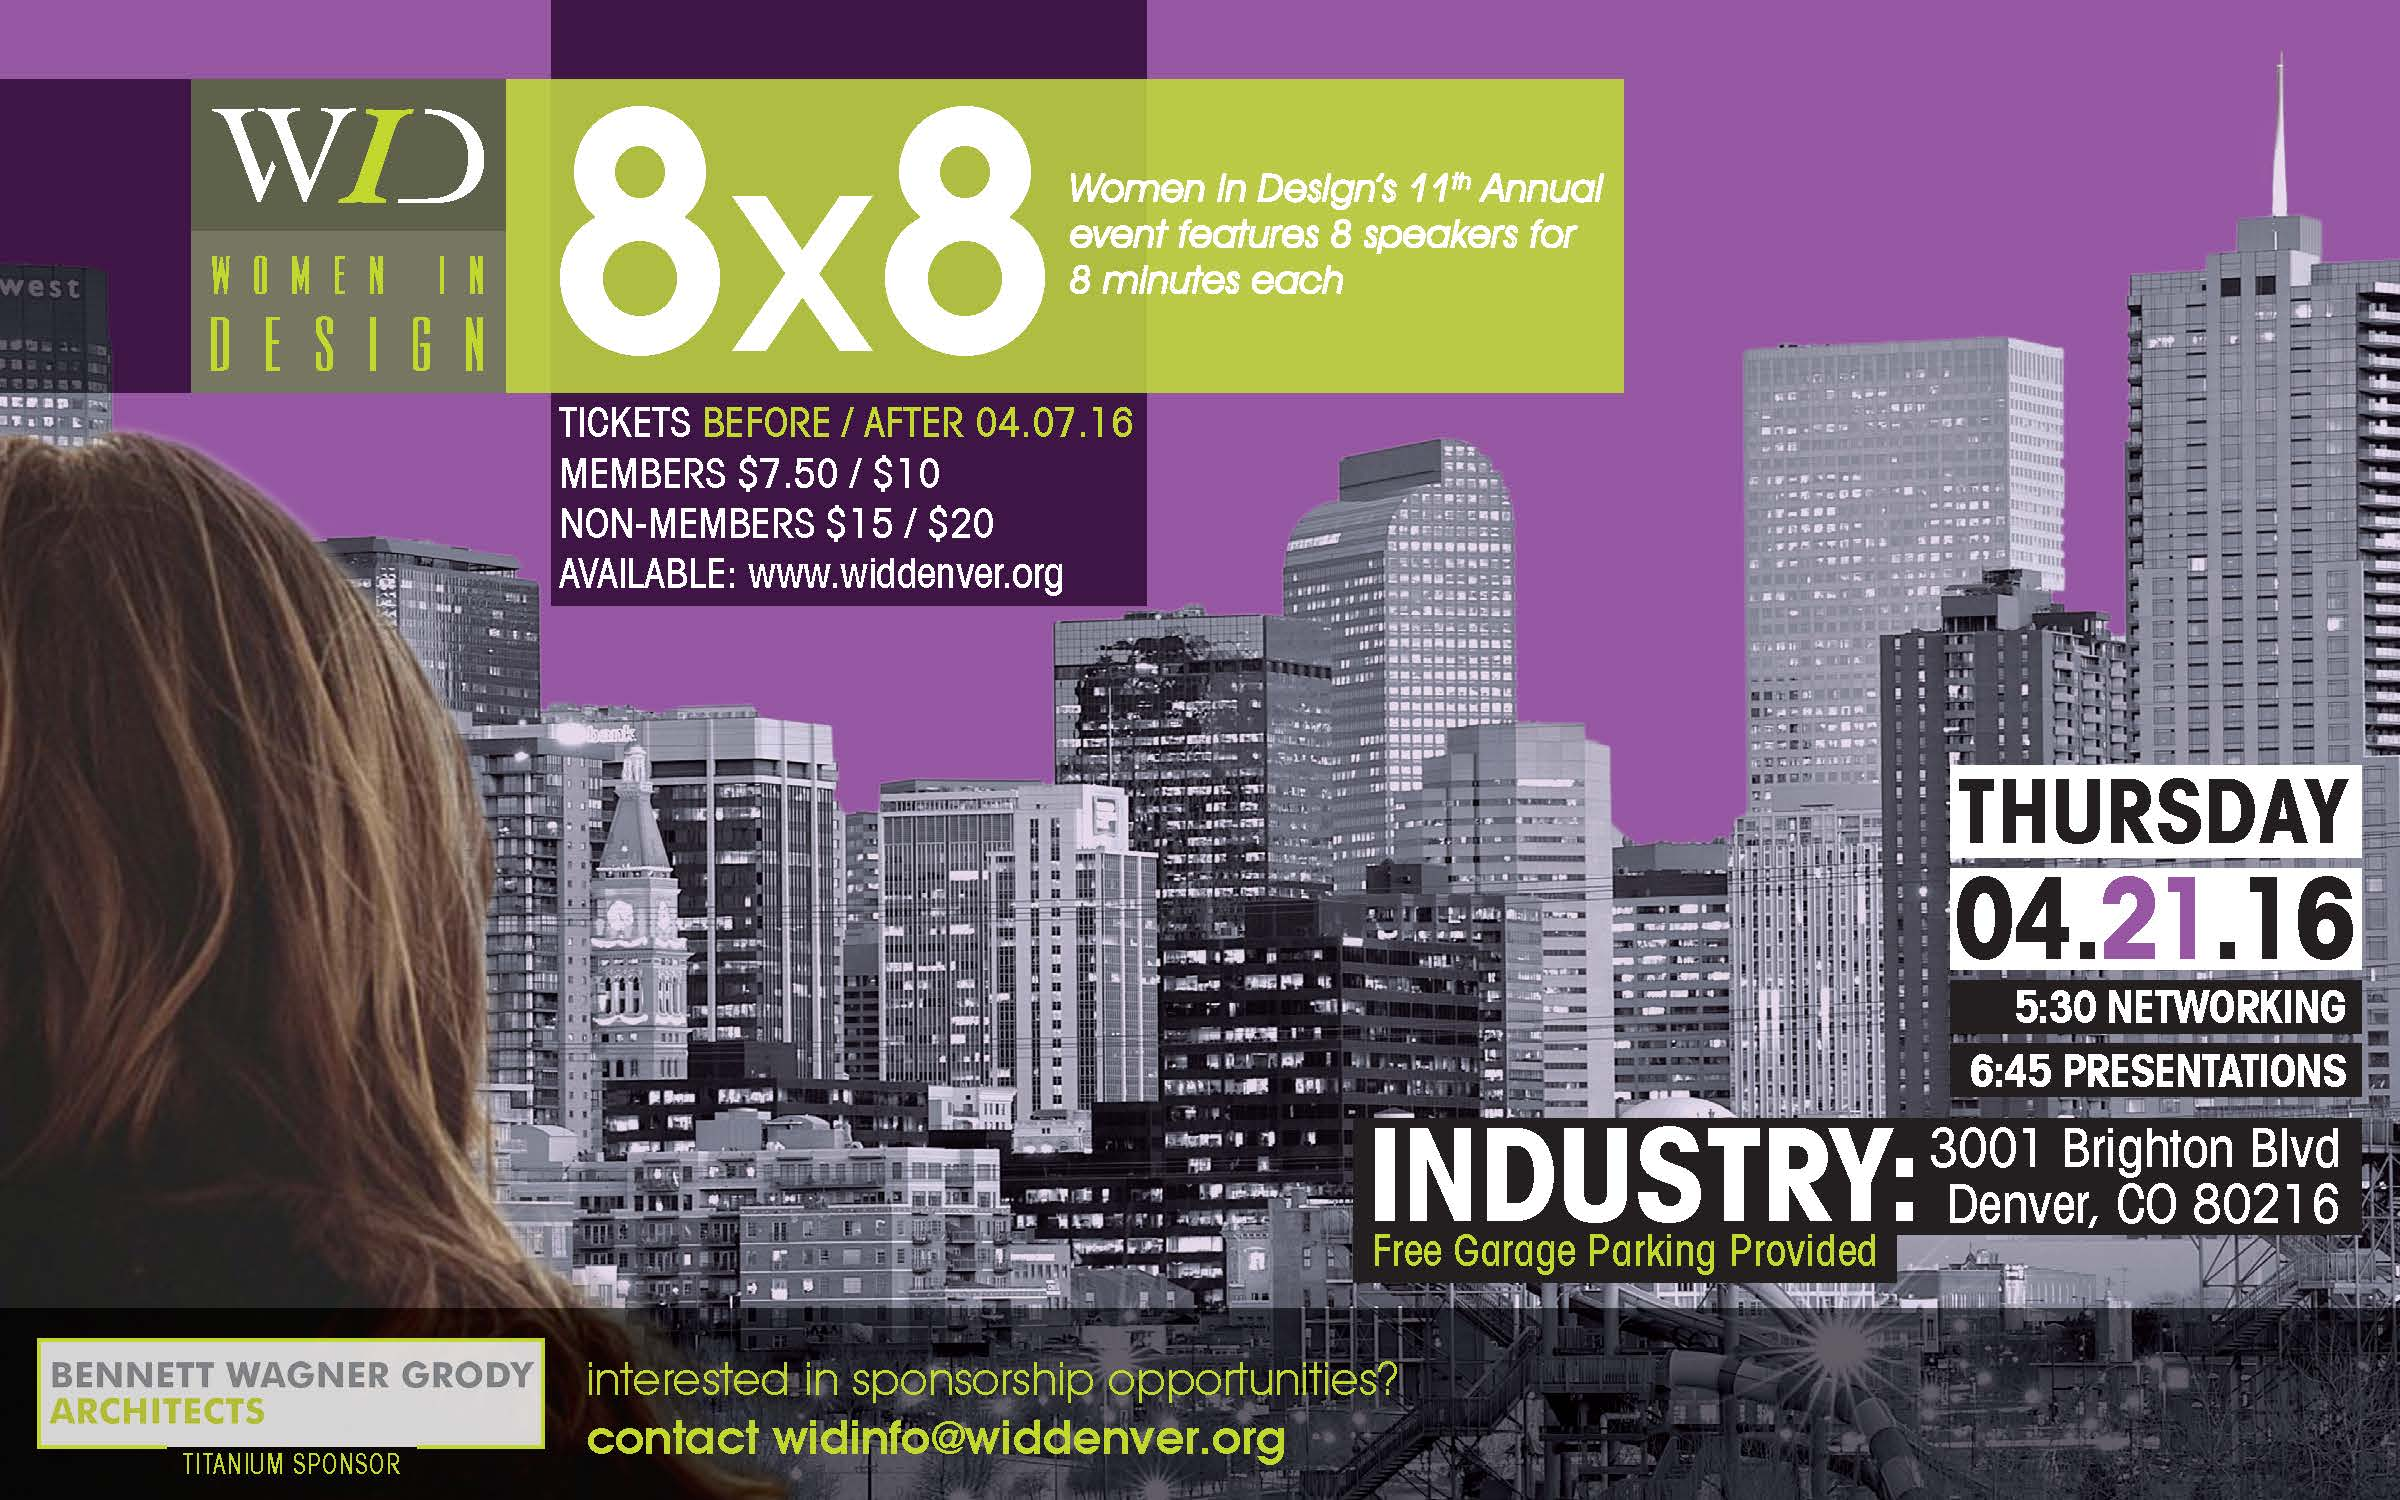 Ideas for a Growing City: Women in Design Hosts 11th Annual 8X8 Event